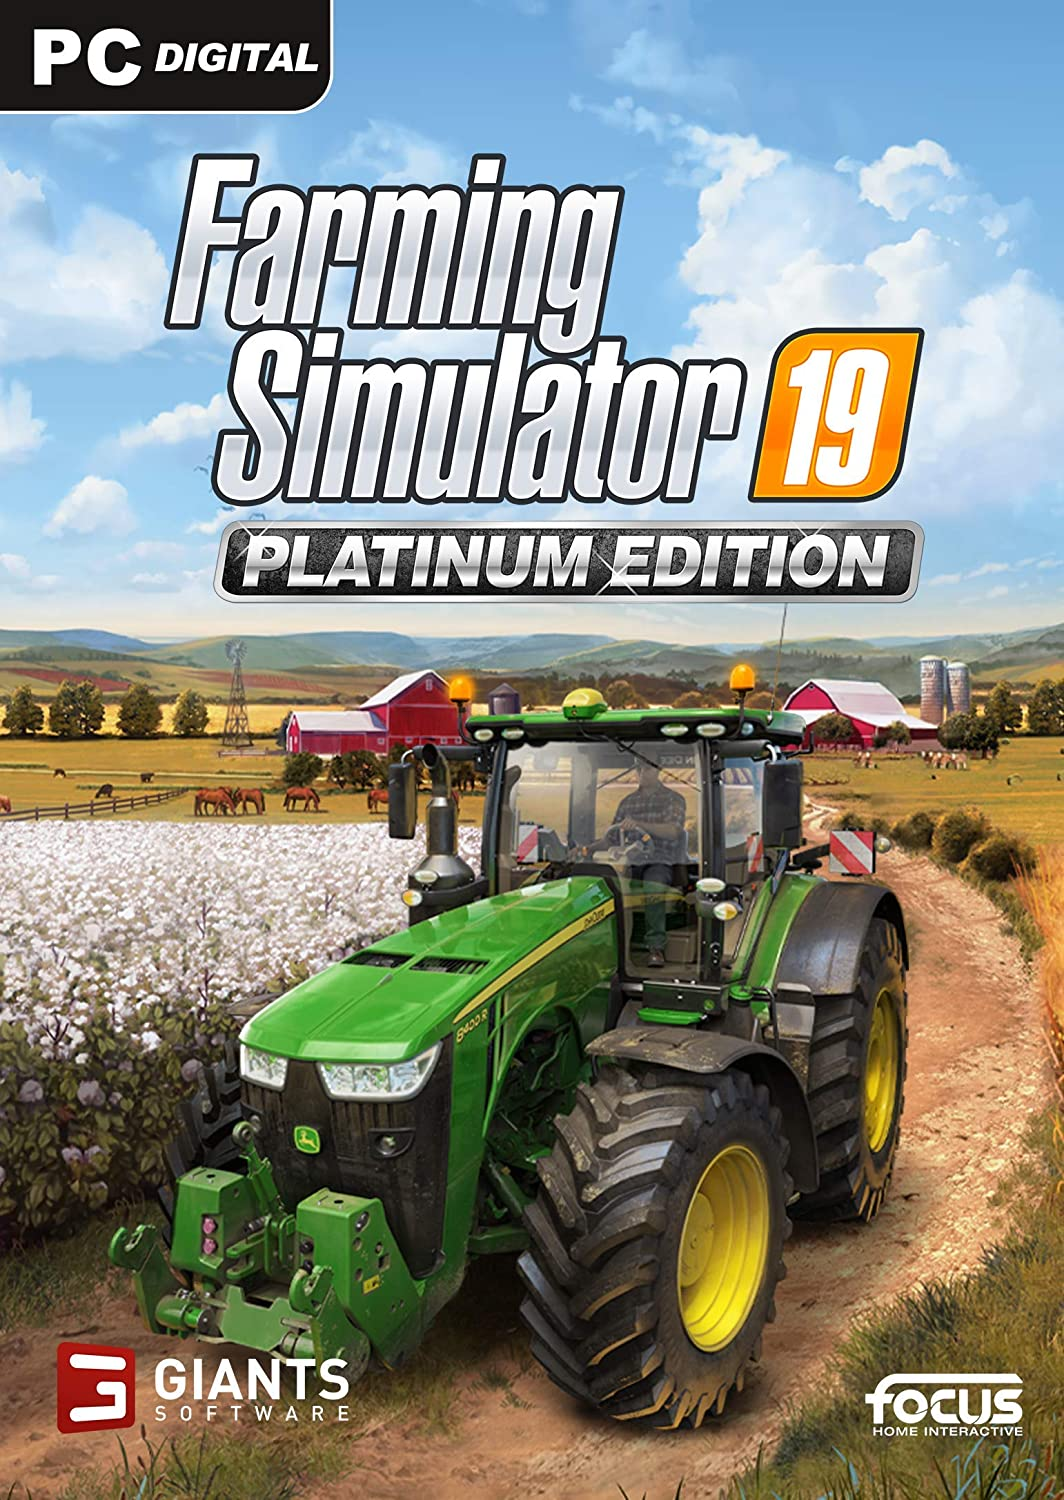 Descargar Farming Simulator 19 PC Cover Caratula